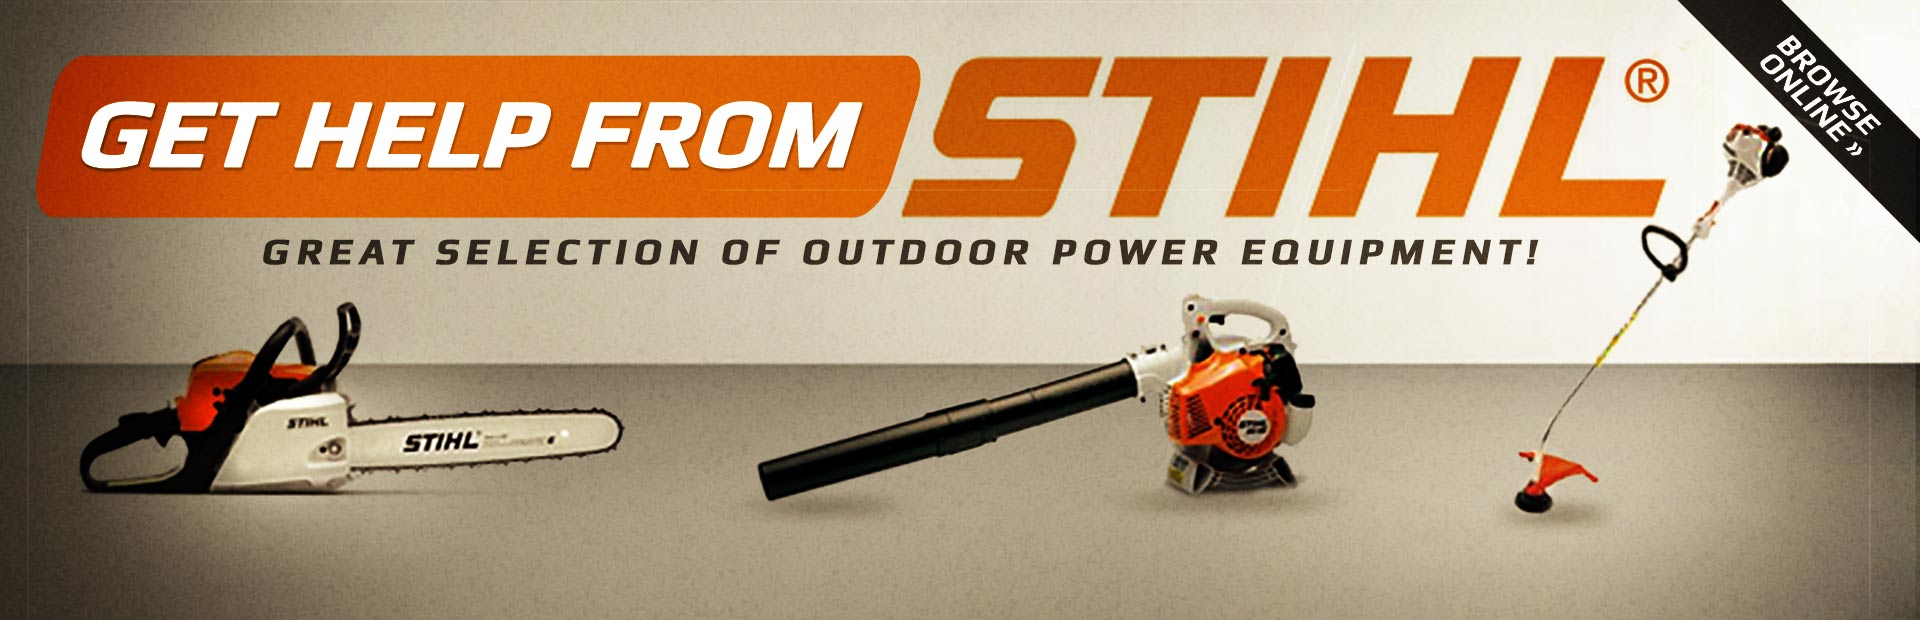 Triole Small Engine Sales Service Ottawa On 613 748 3991 Briggs Stratton Diagram Chainsaw Click Here To Browse Stihl Outdoor Power Equipment